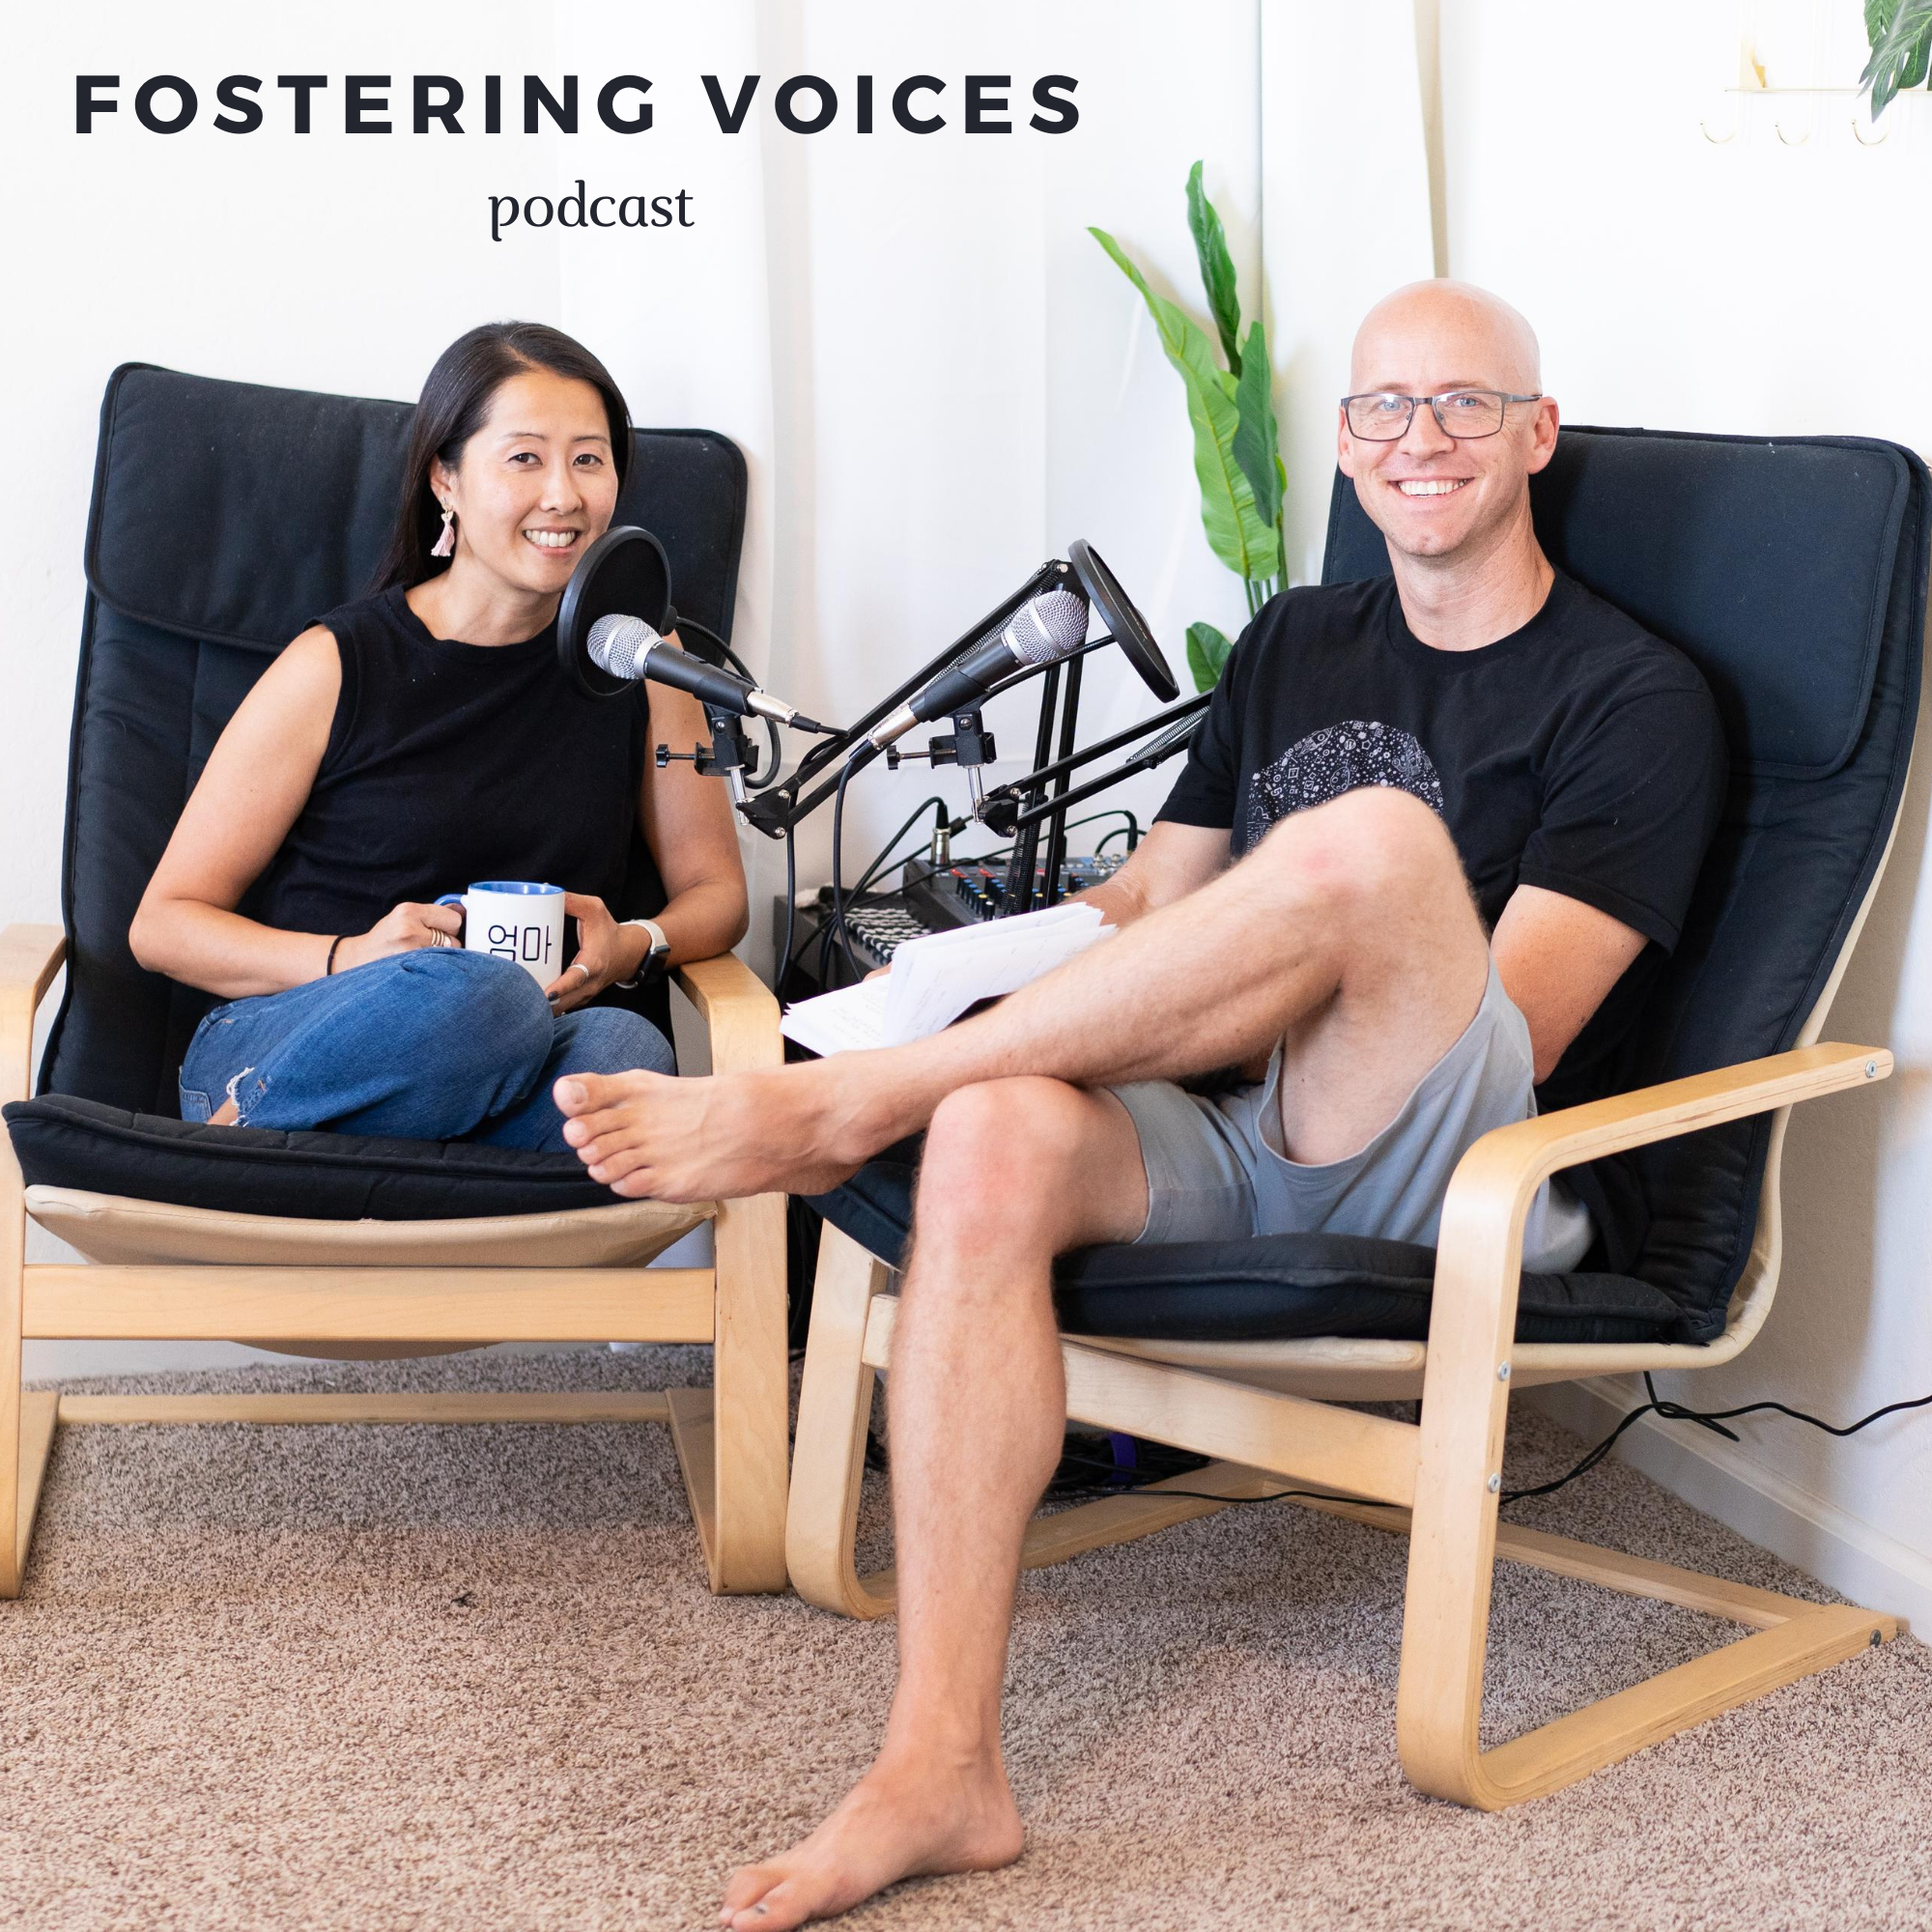 Episode 76: Building Hope at the Foster Arizona Gala show art